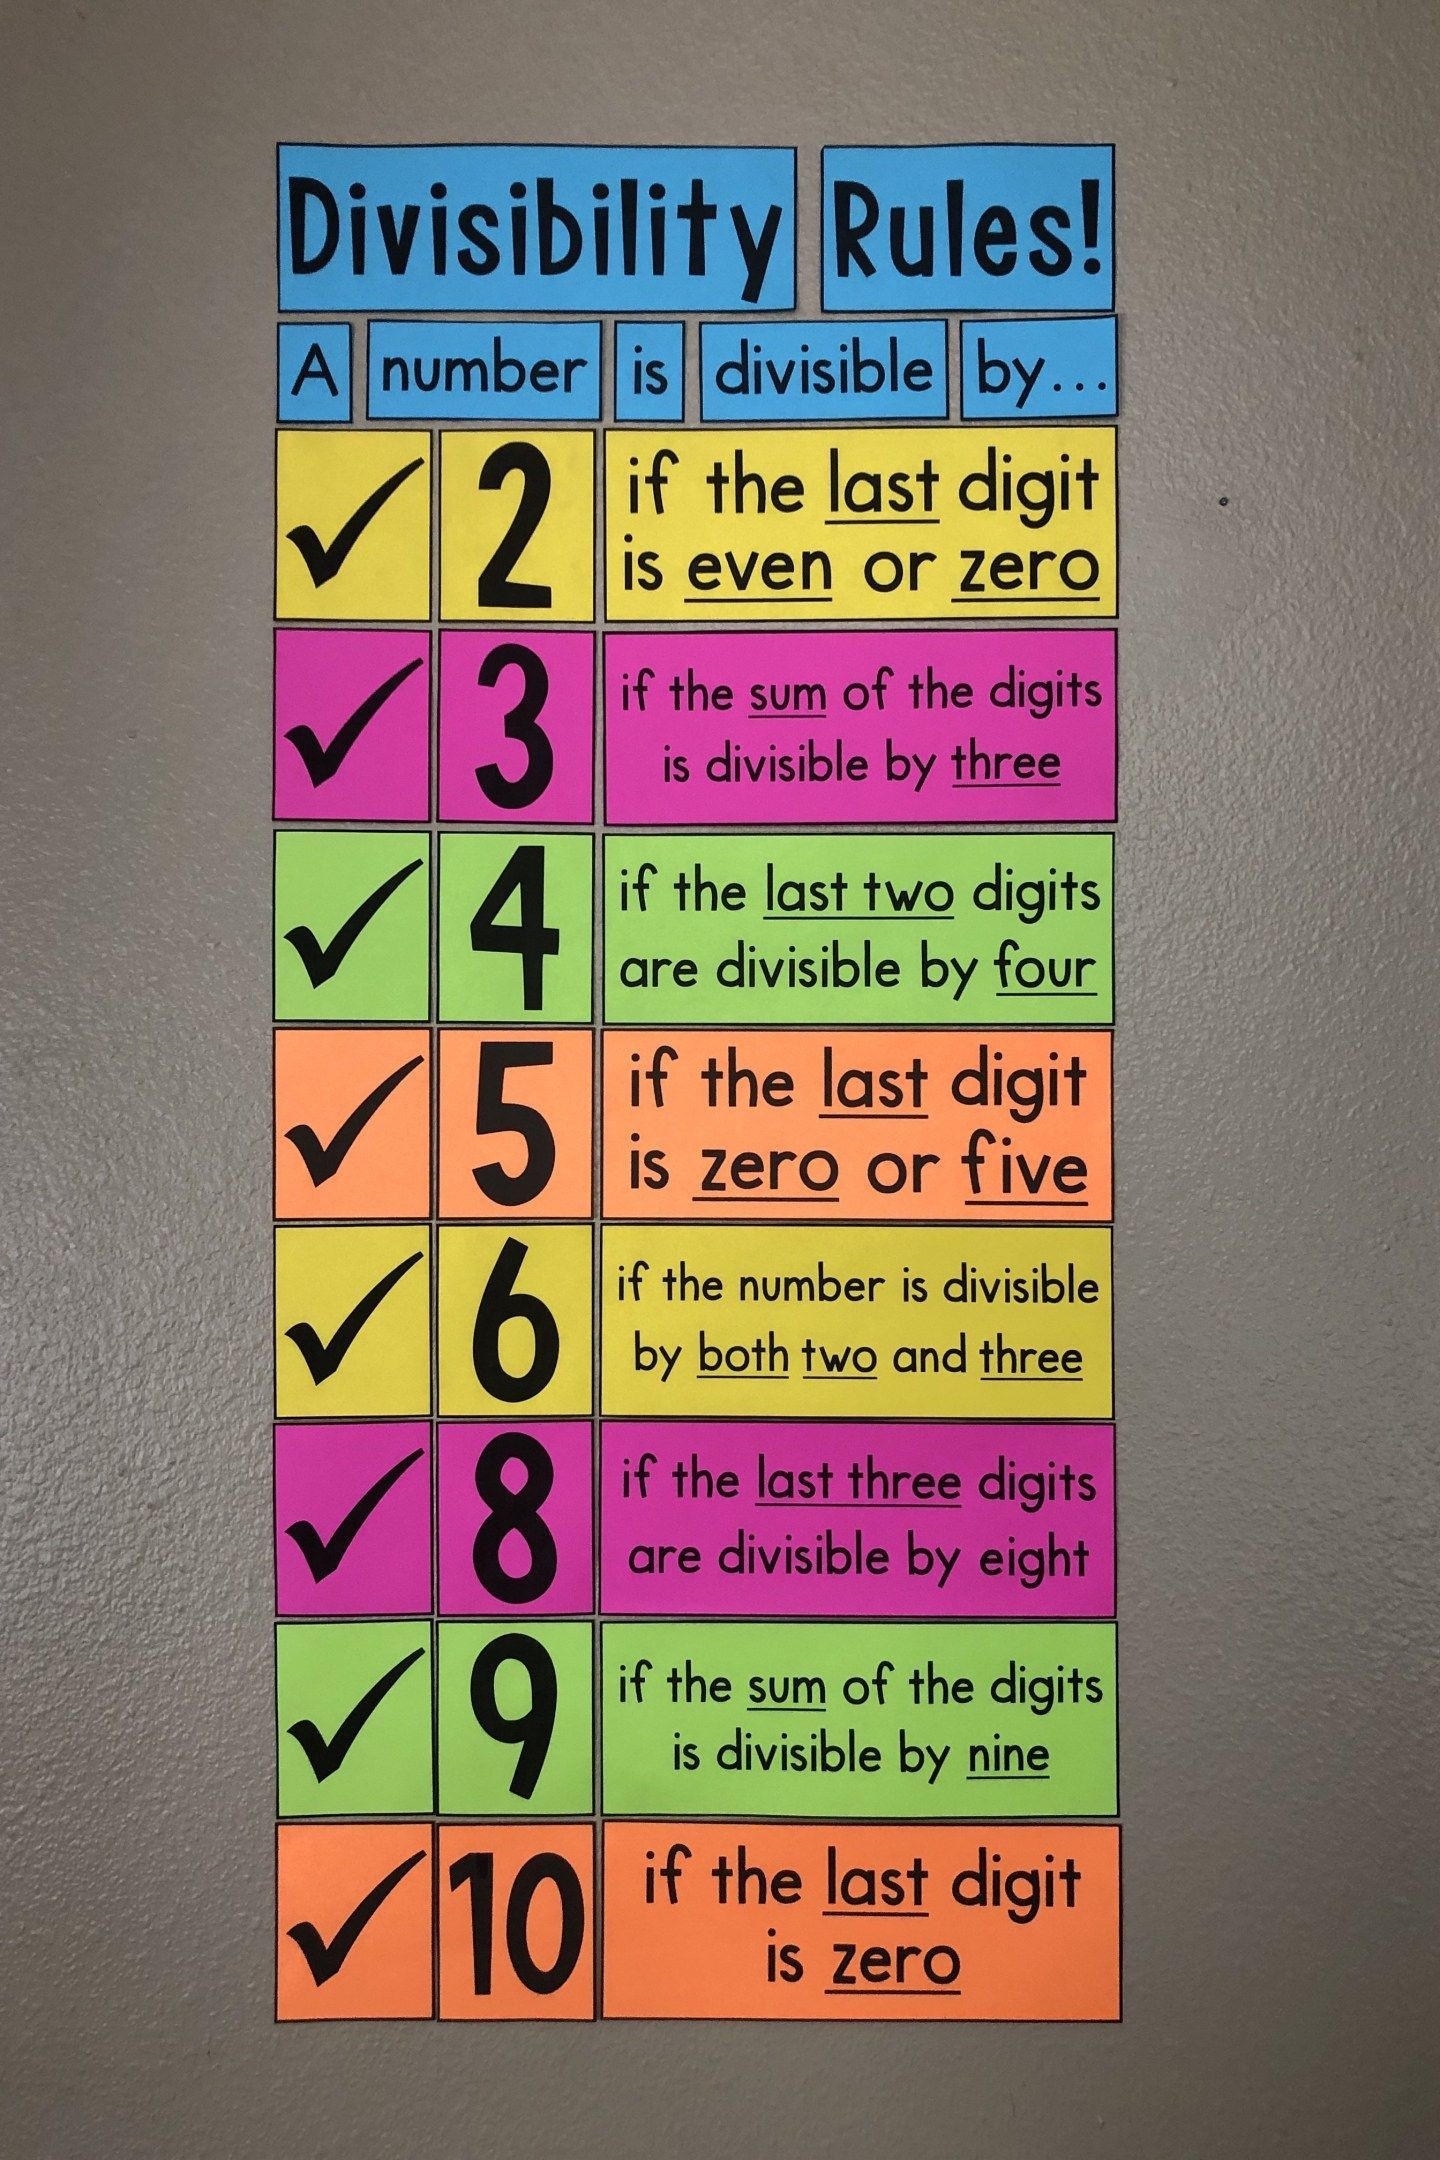 Divisibility Rules Worksheet 6th Grade Divisibility Rules Poster the Perfect Way to Learn or